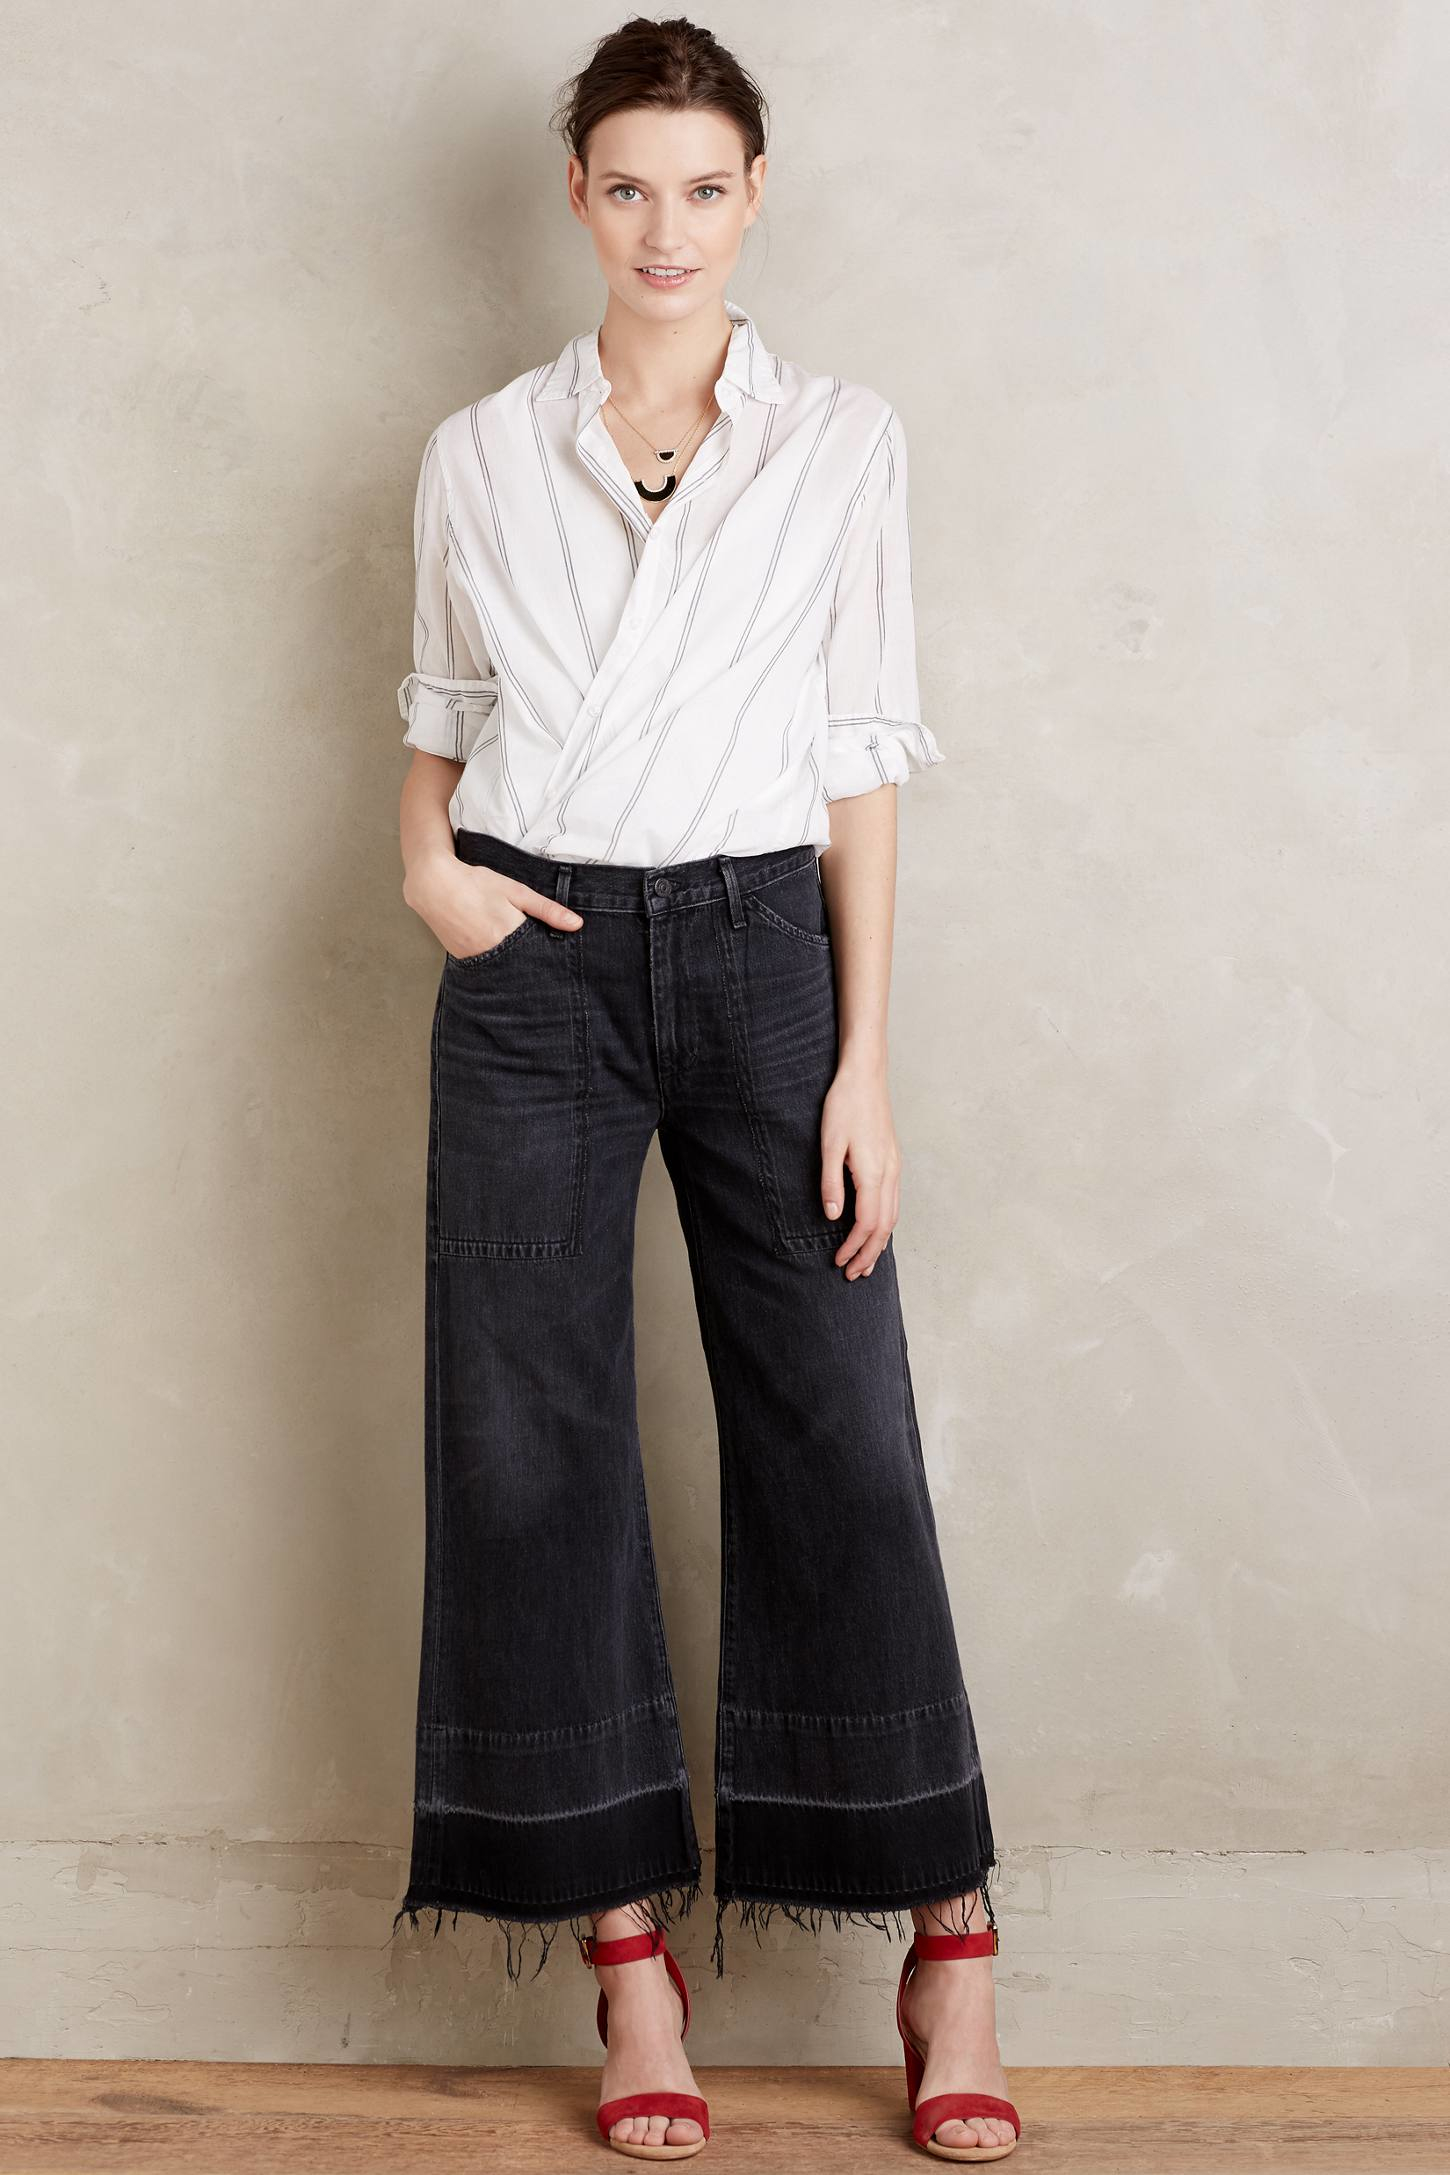 Citizens of humanity Melanie Wide-leg Crop Jeans in Black | Lyst